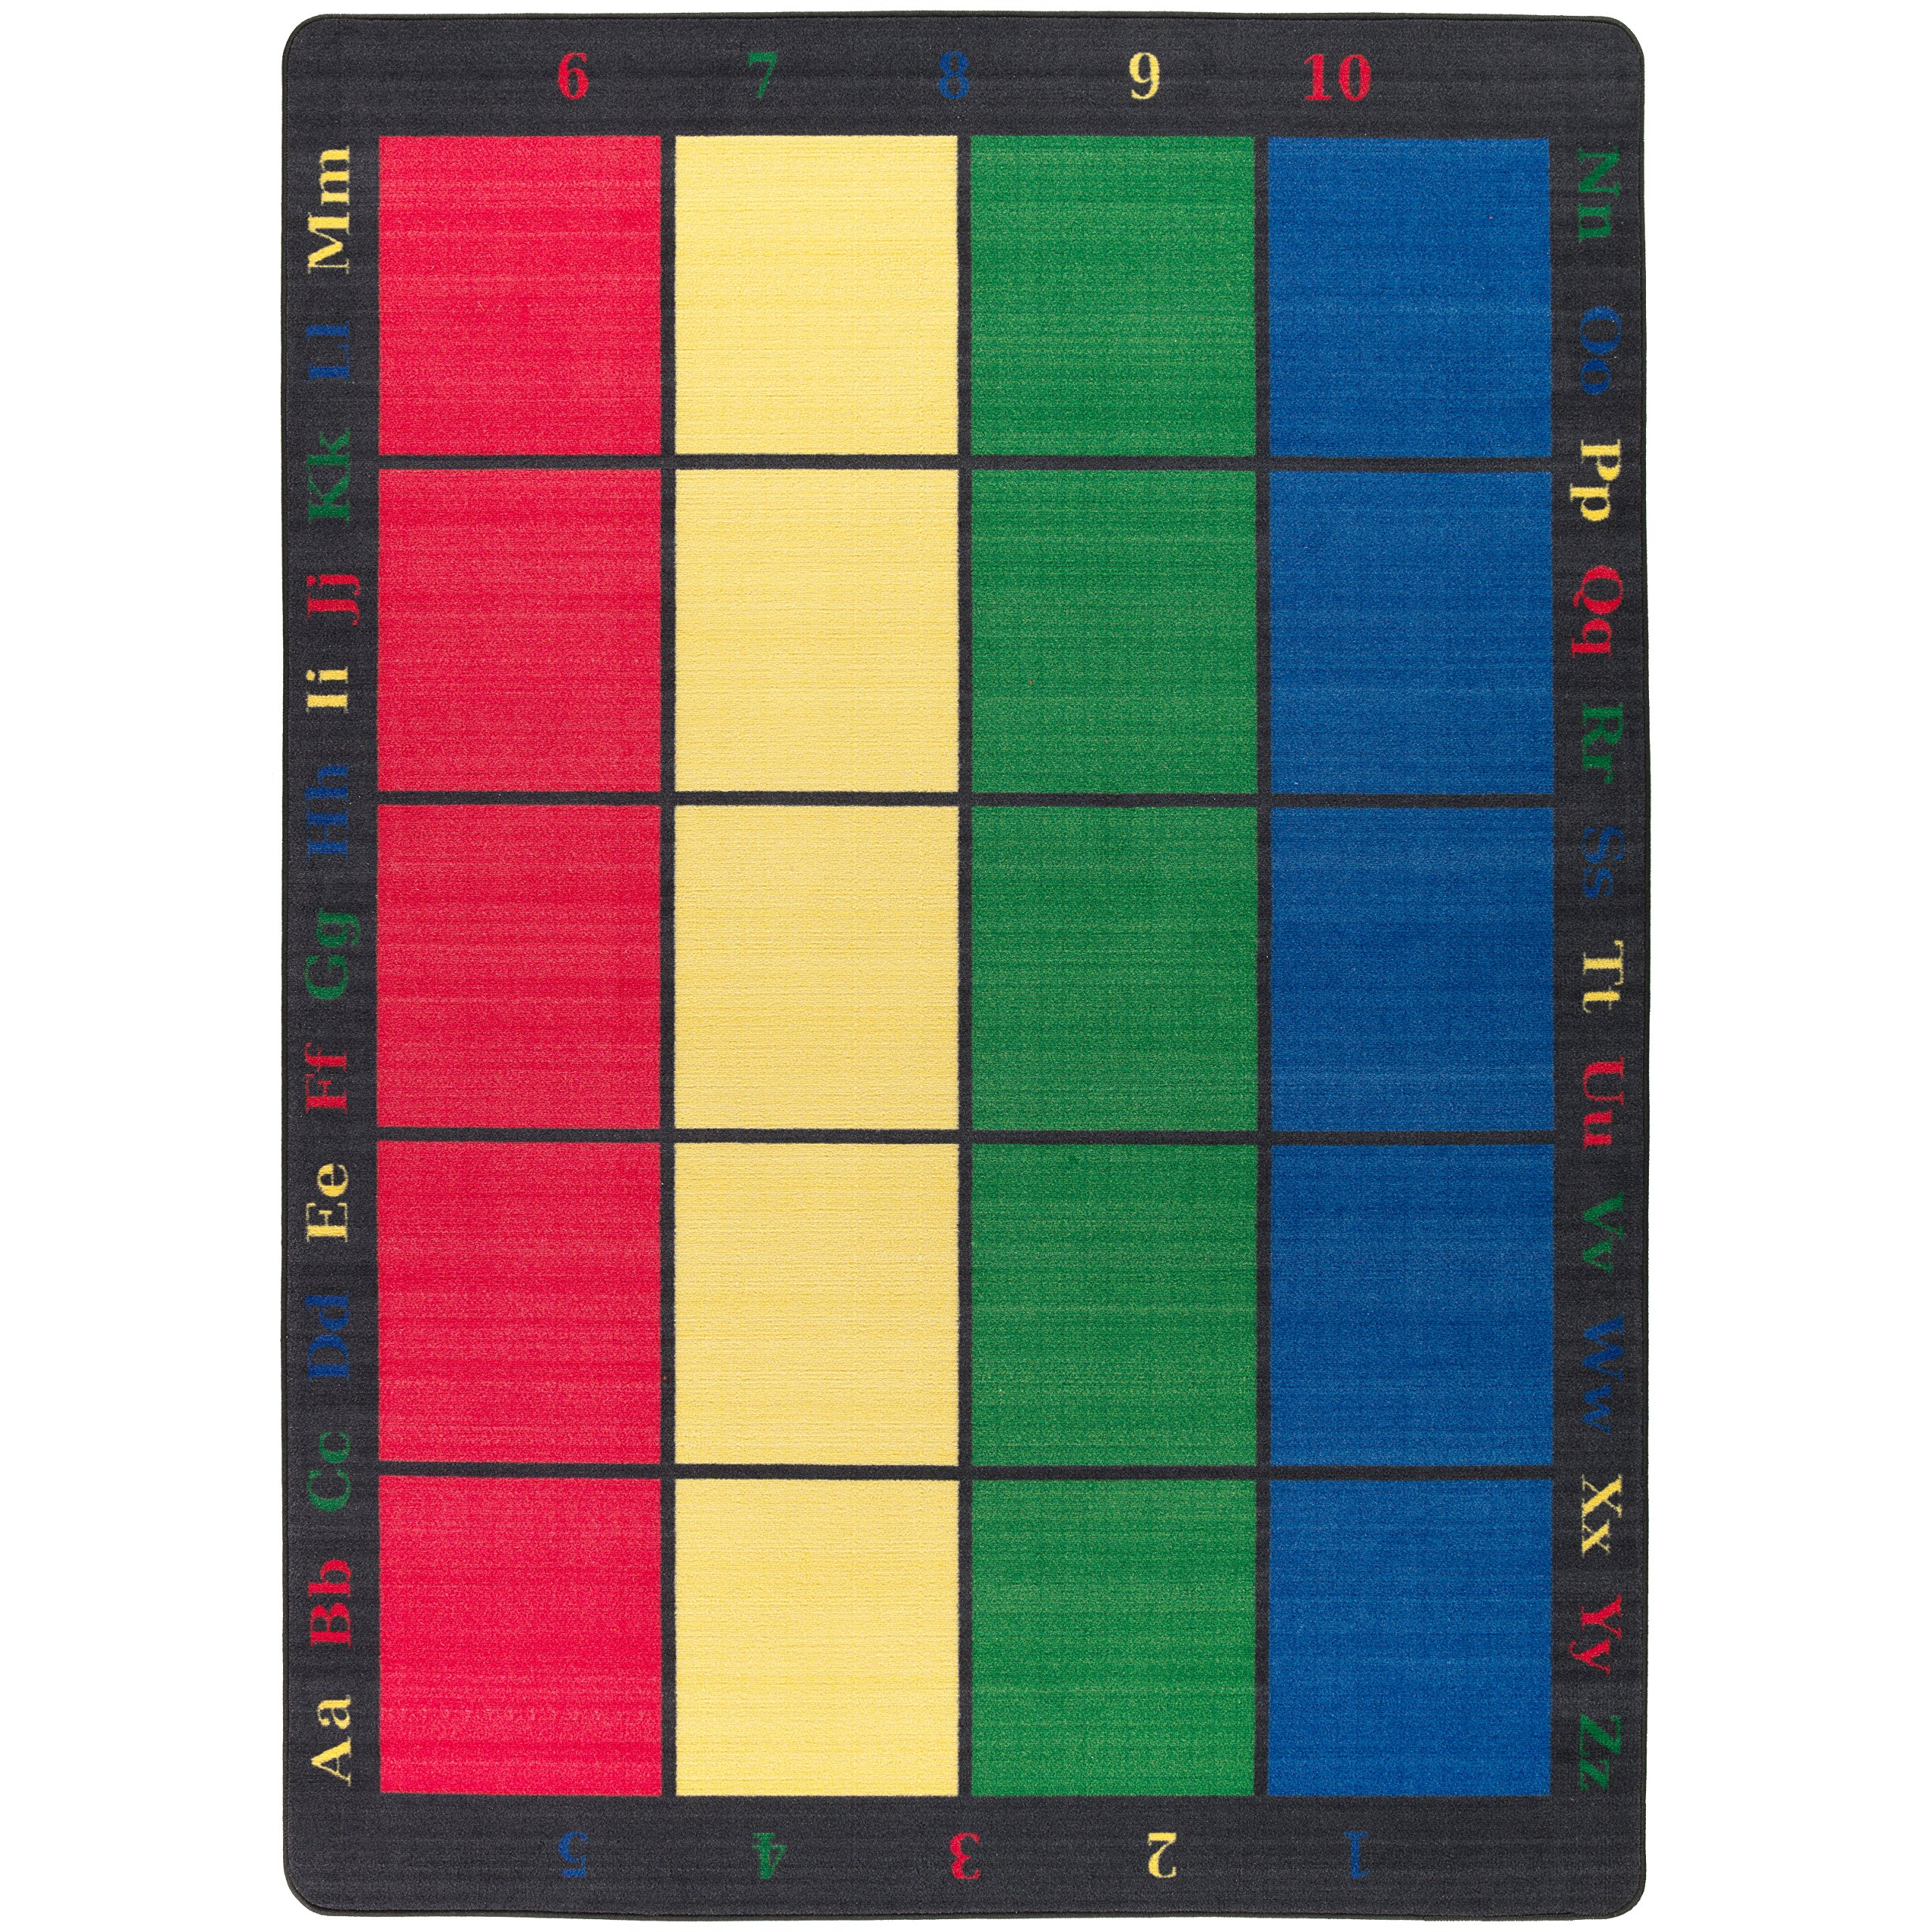 Flagship Carpets FE126-32A Learning Grid Seating Carpet, Colorful Letters and Numbers Border This Rug, Kids School, 5'10'' x 8'4'' Seats 15, 70'' Length, 100'' Width, Blue/Green/Yellow/Red